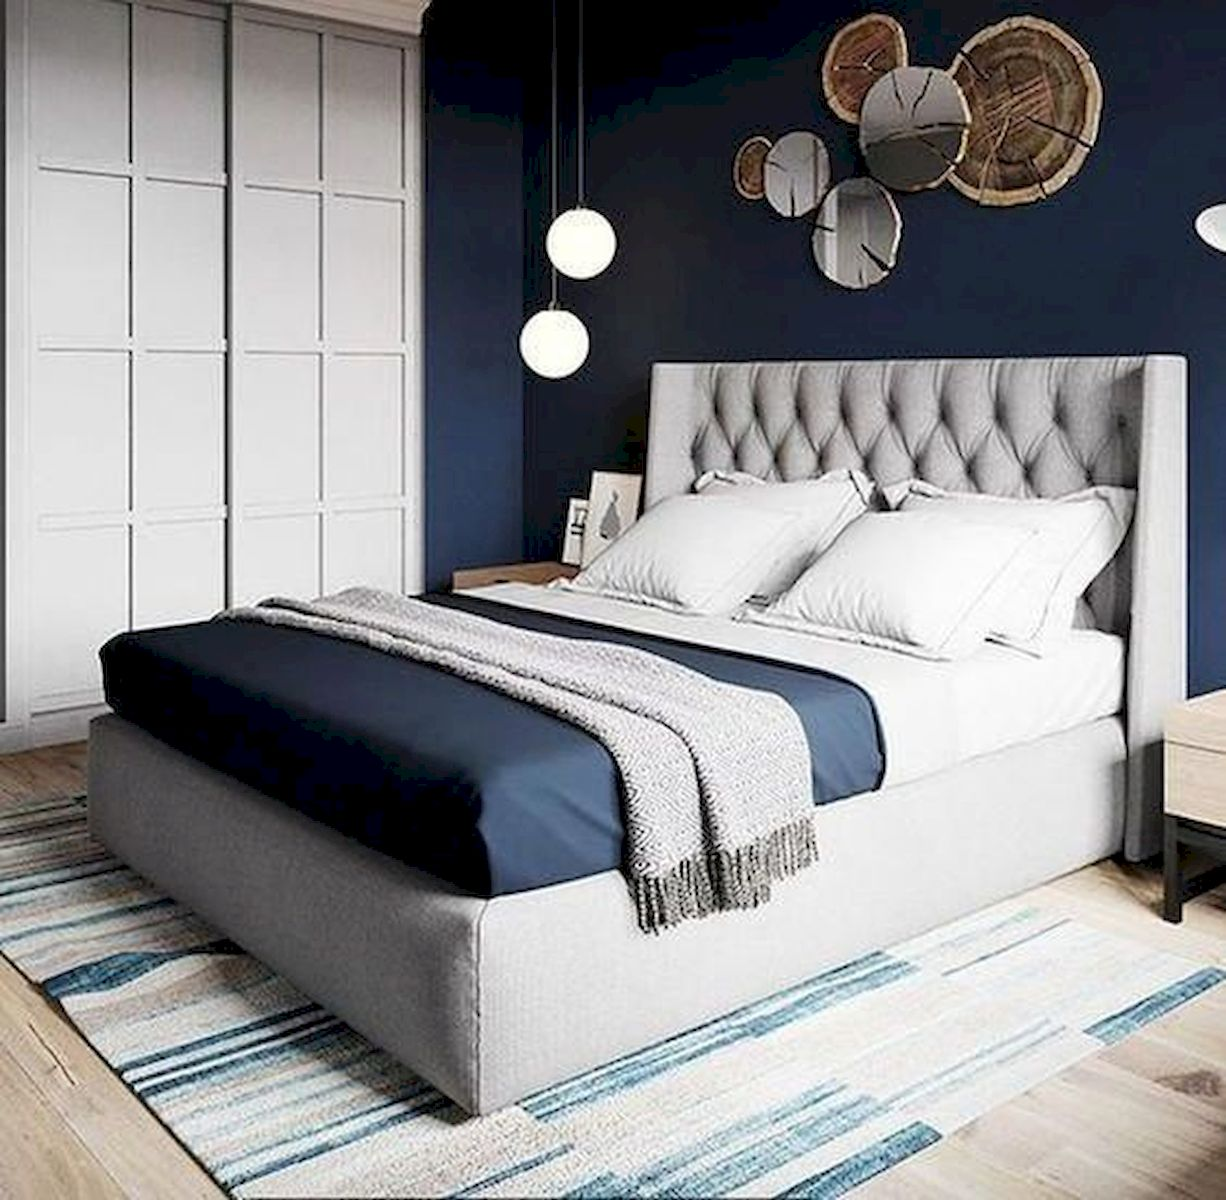 36 Creative DIY Wall Bedroom Decor Ideas That Unique and Beautiful (6)